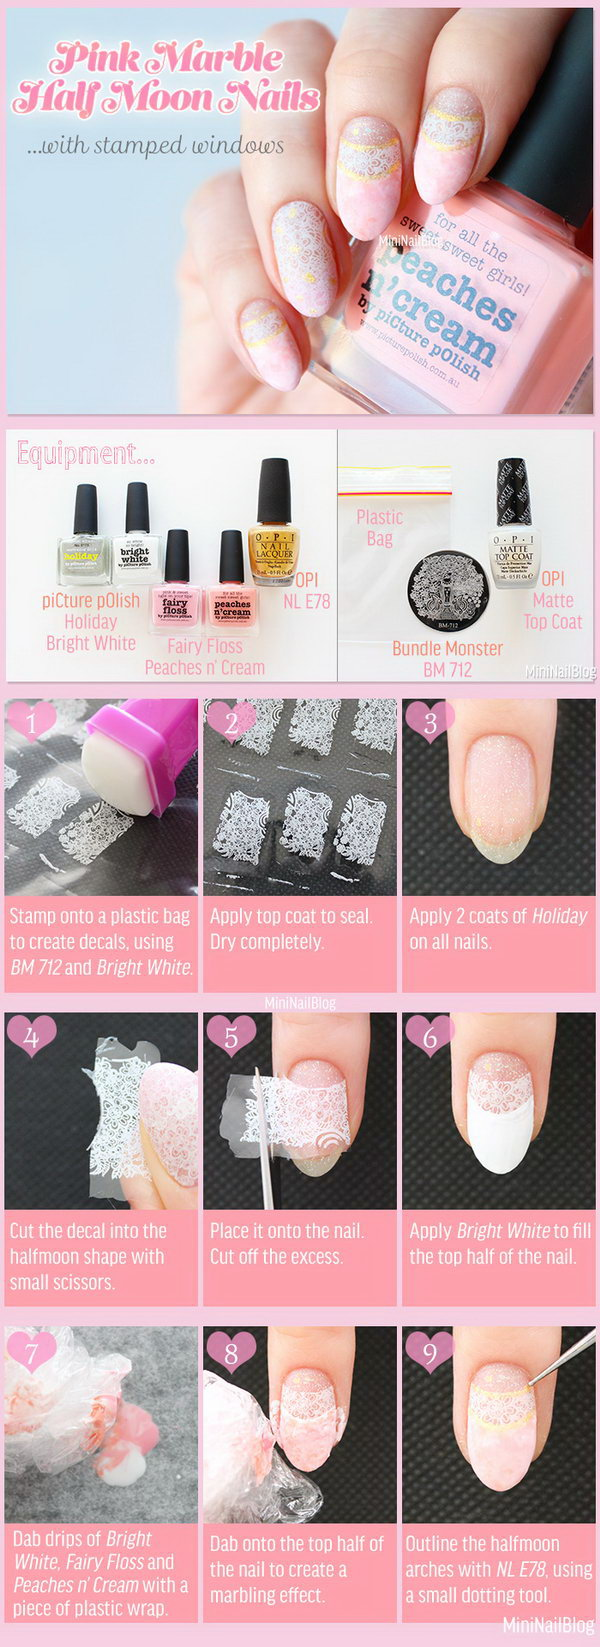 12 Easy and Fun Nail Art Tutorials